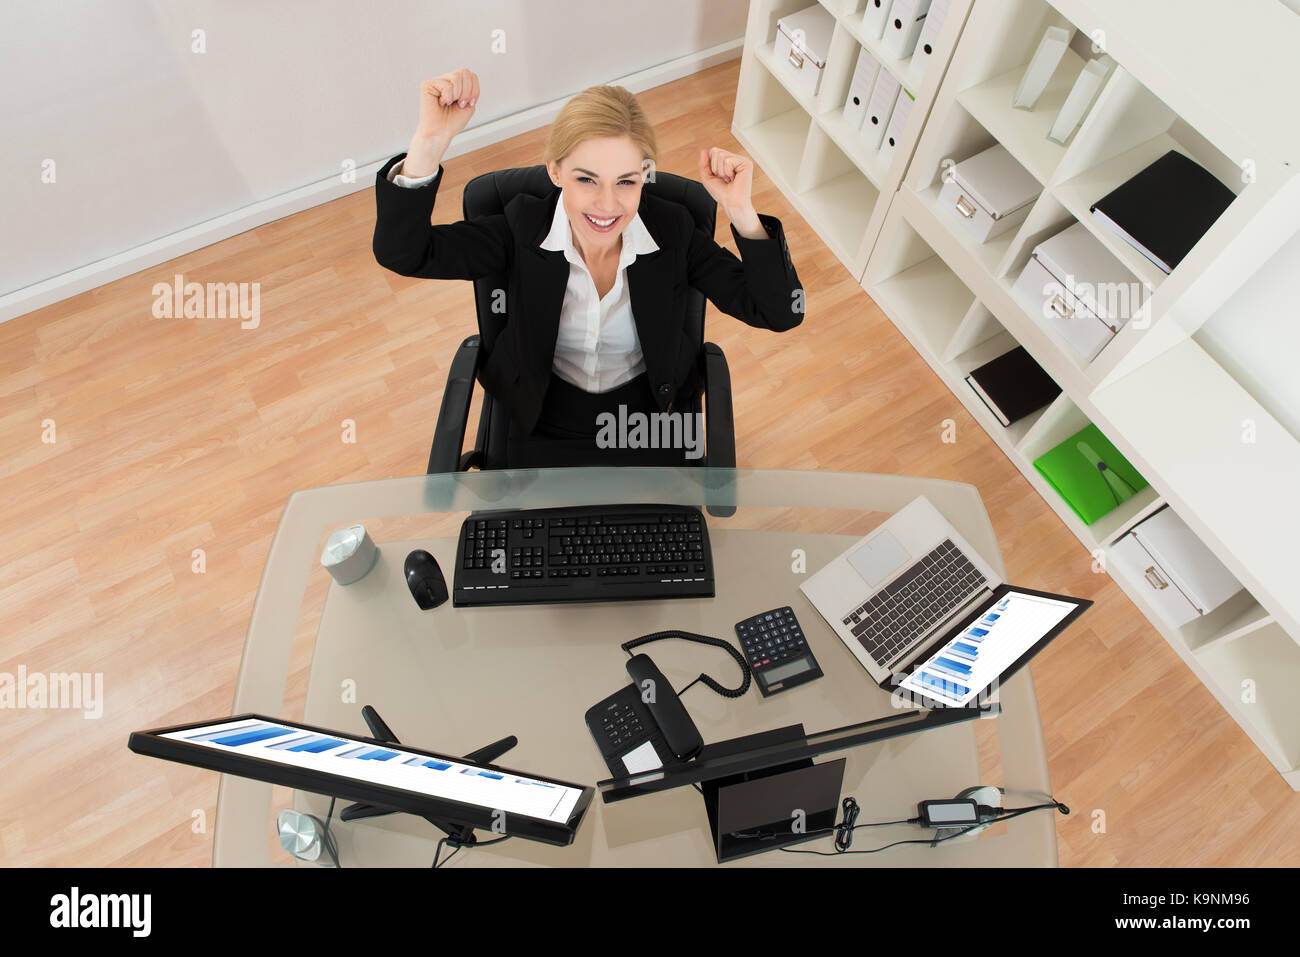 Young Happy Businesswoman Raising Arms In Office - Stock Image